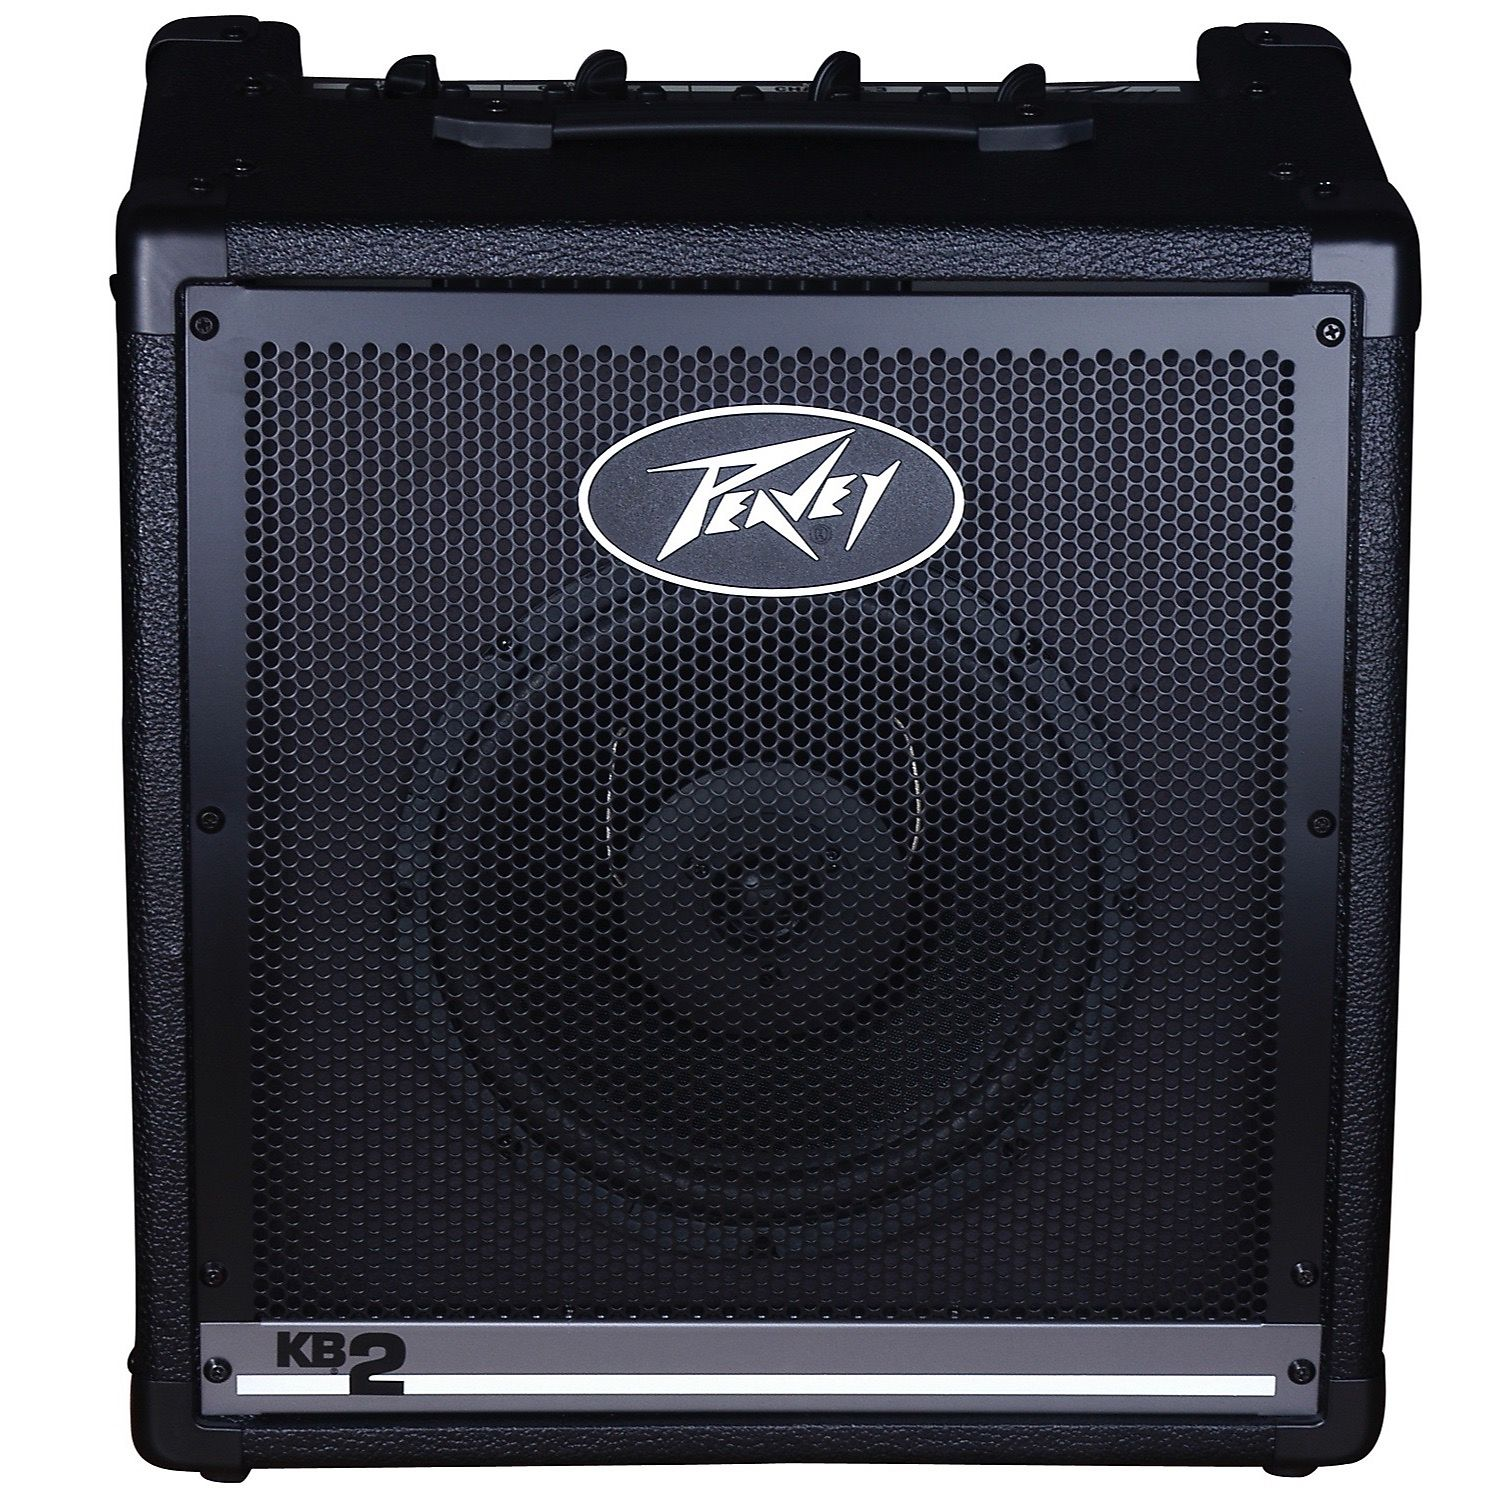 Peavey KB2 3-Channel Keyboard Amplifier (40 Watts, 1x10 Inch)